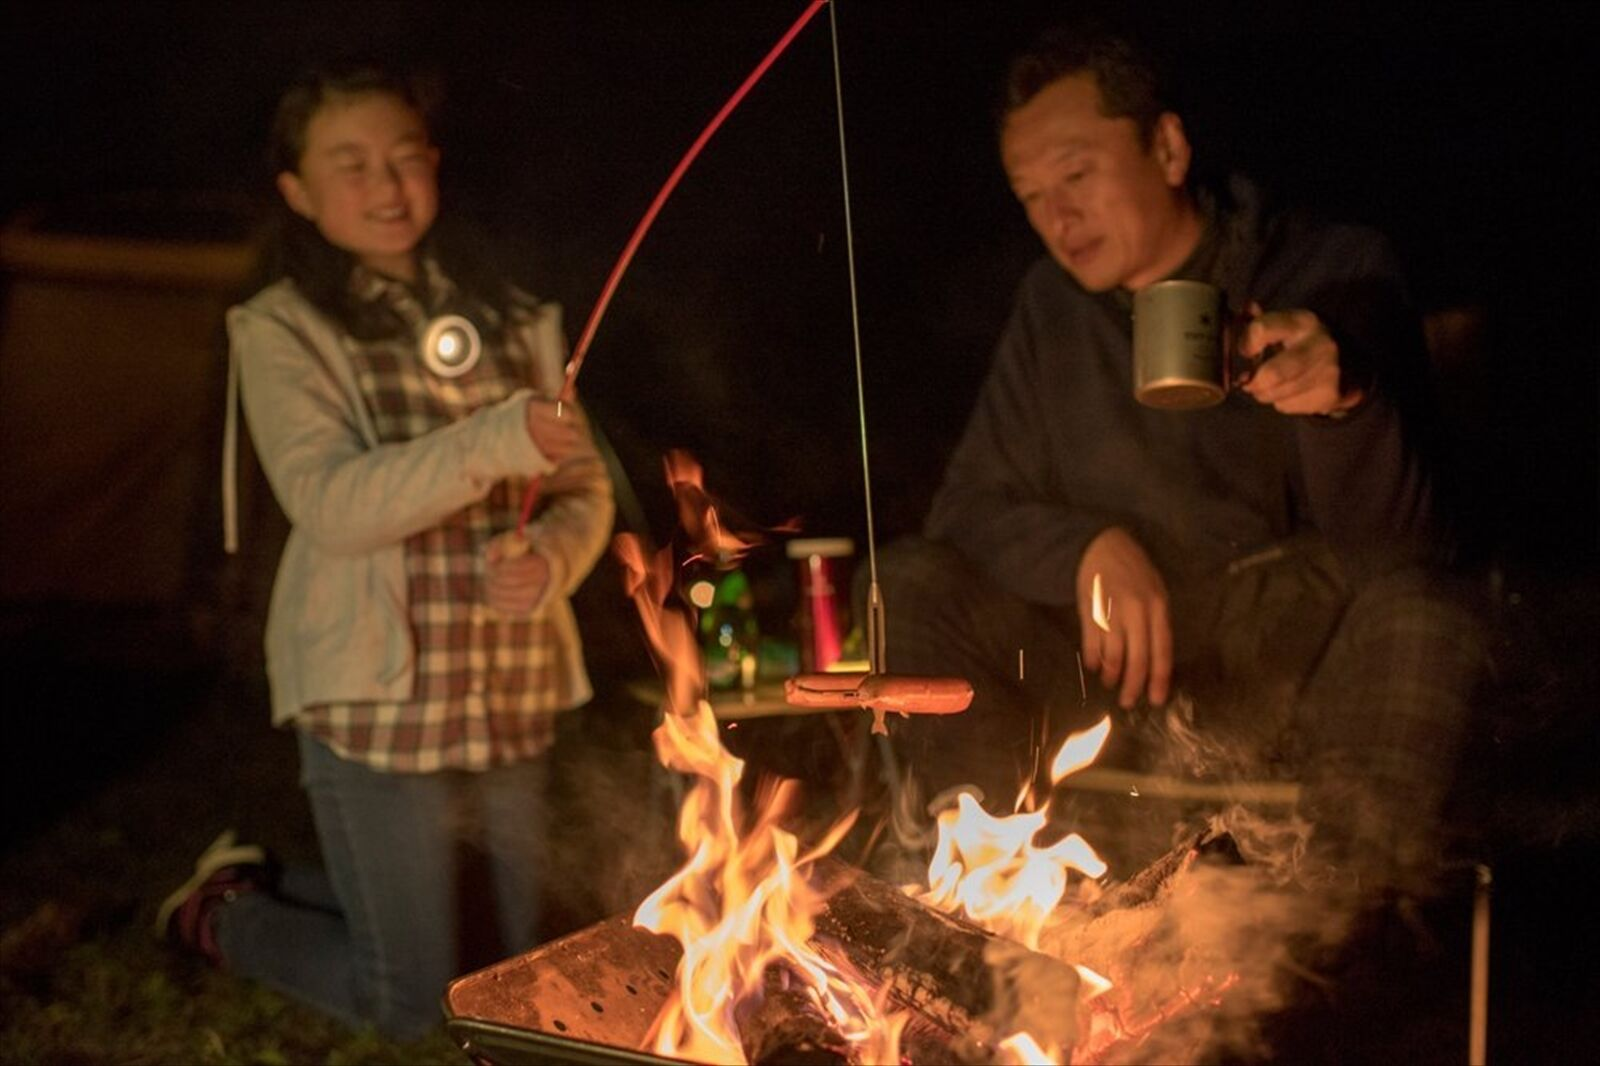 New snow peak grill bbq - rote küche camping wander - f   s aus japan